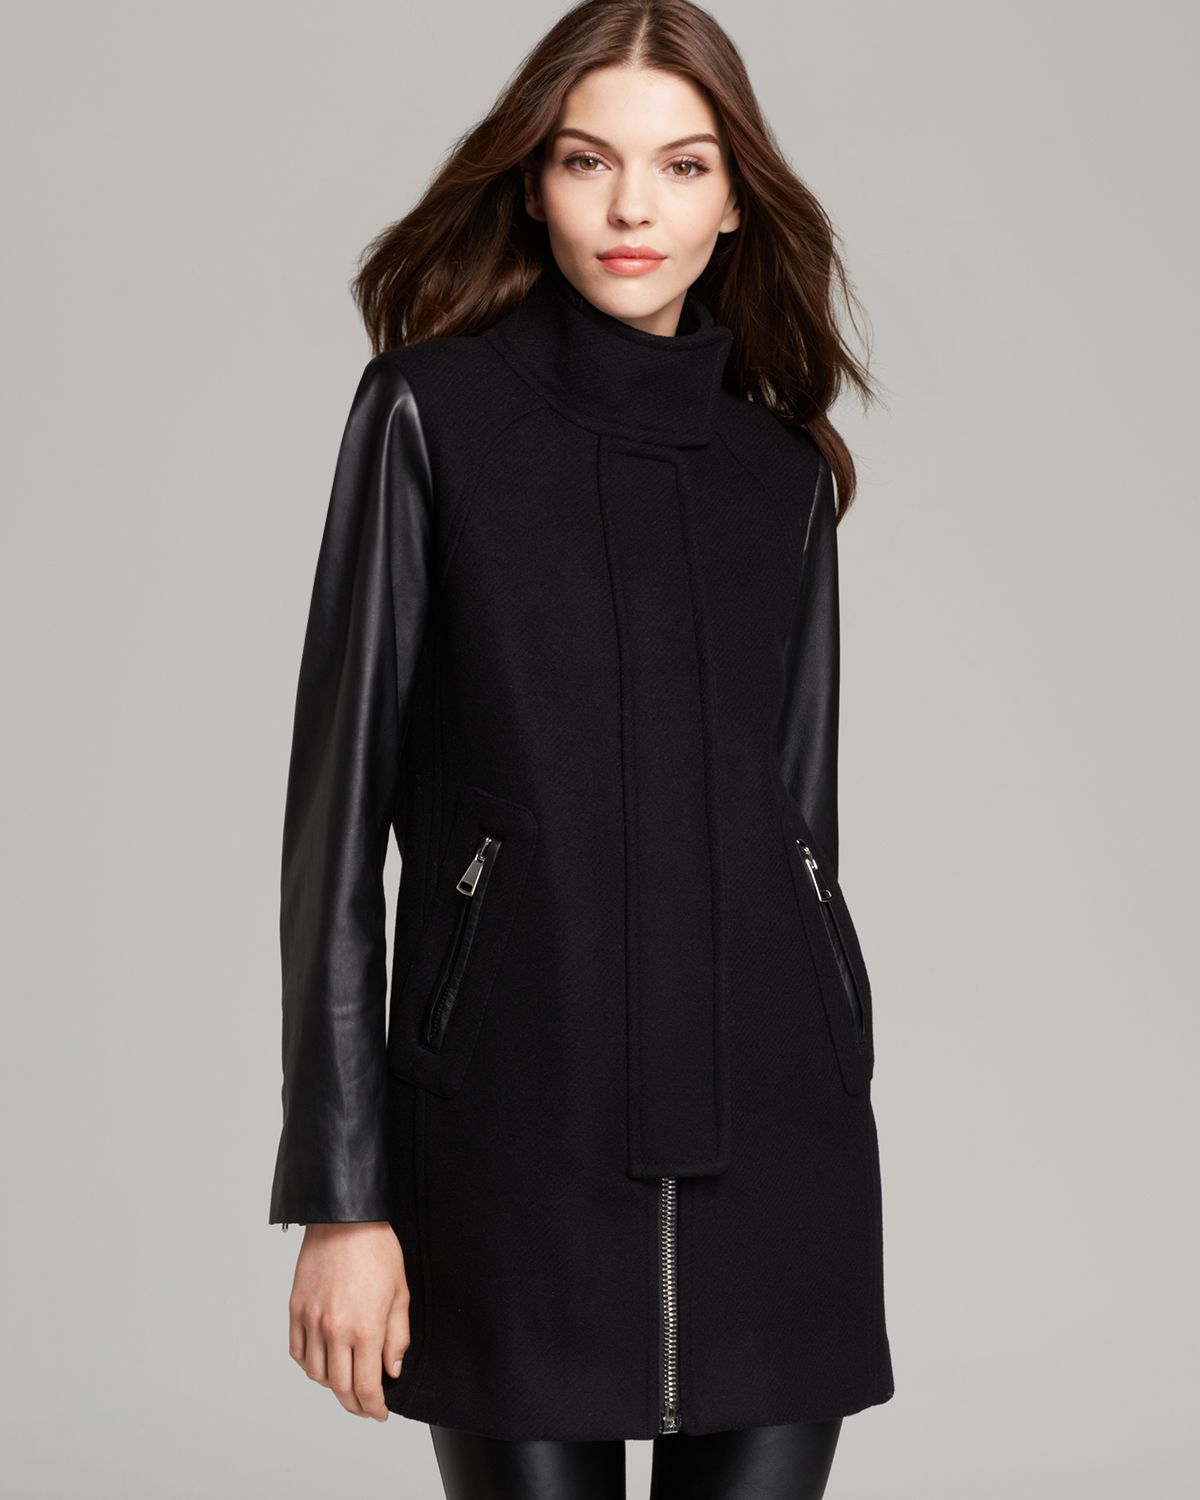 Milly Coat Zip Swing with Leather Sleeves in Black | Lyst